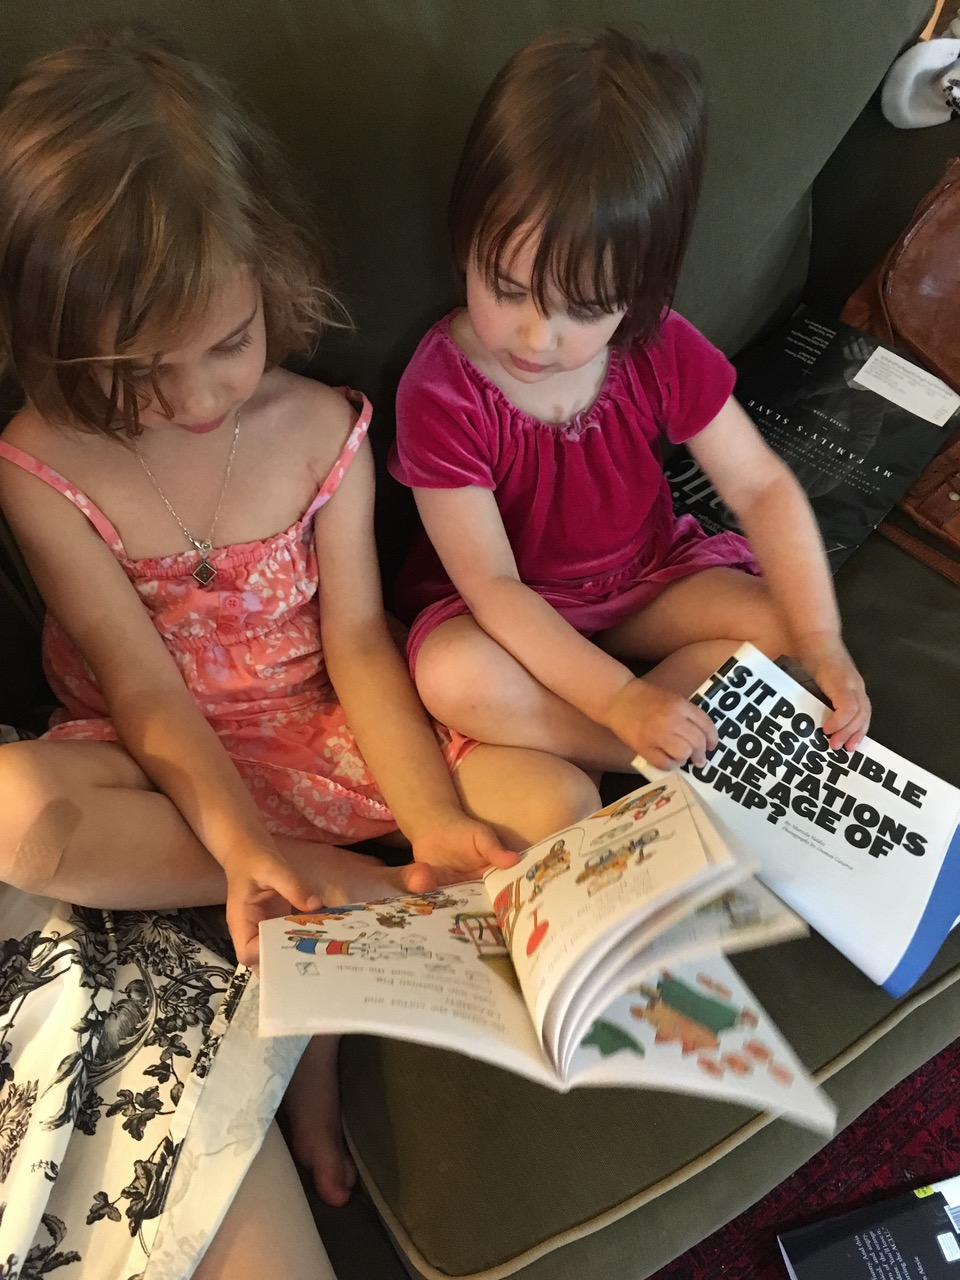 Rosenwaike's children sitting next to each other with a book and a newspaper.